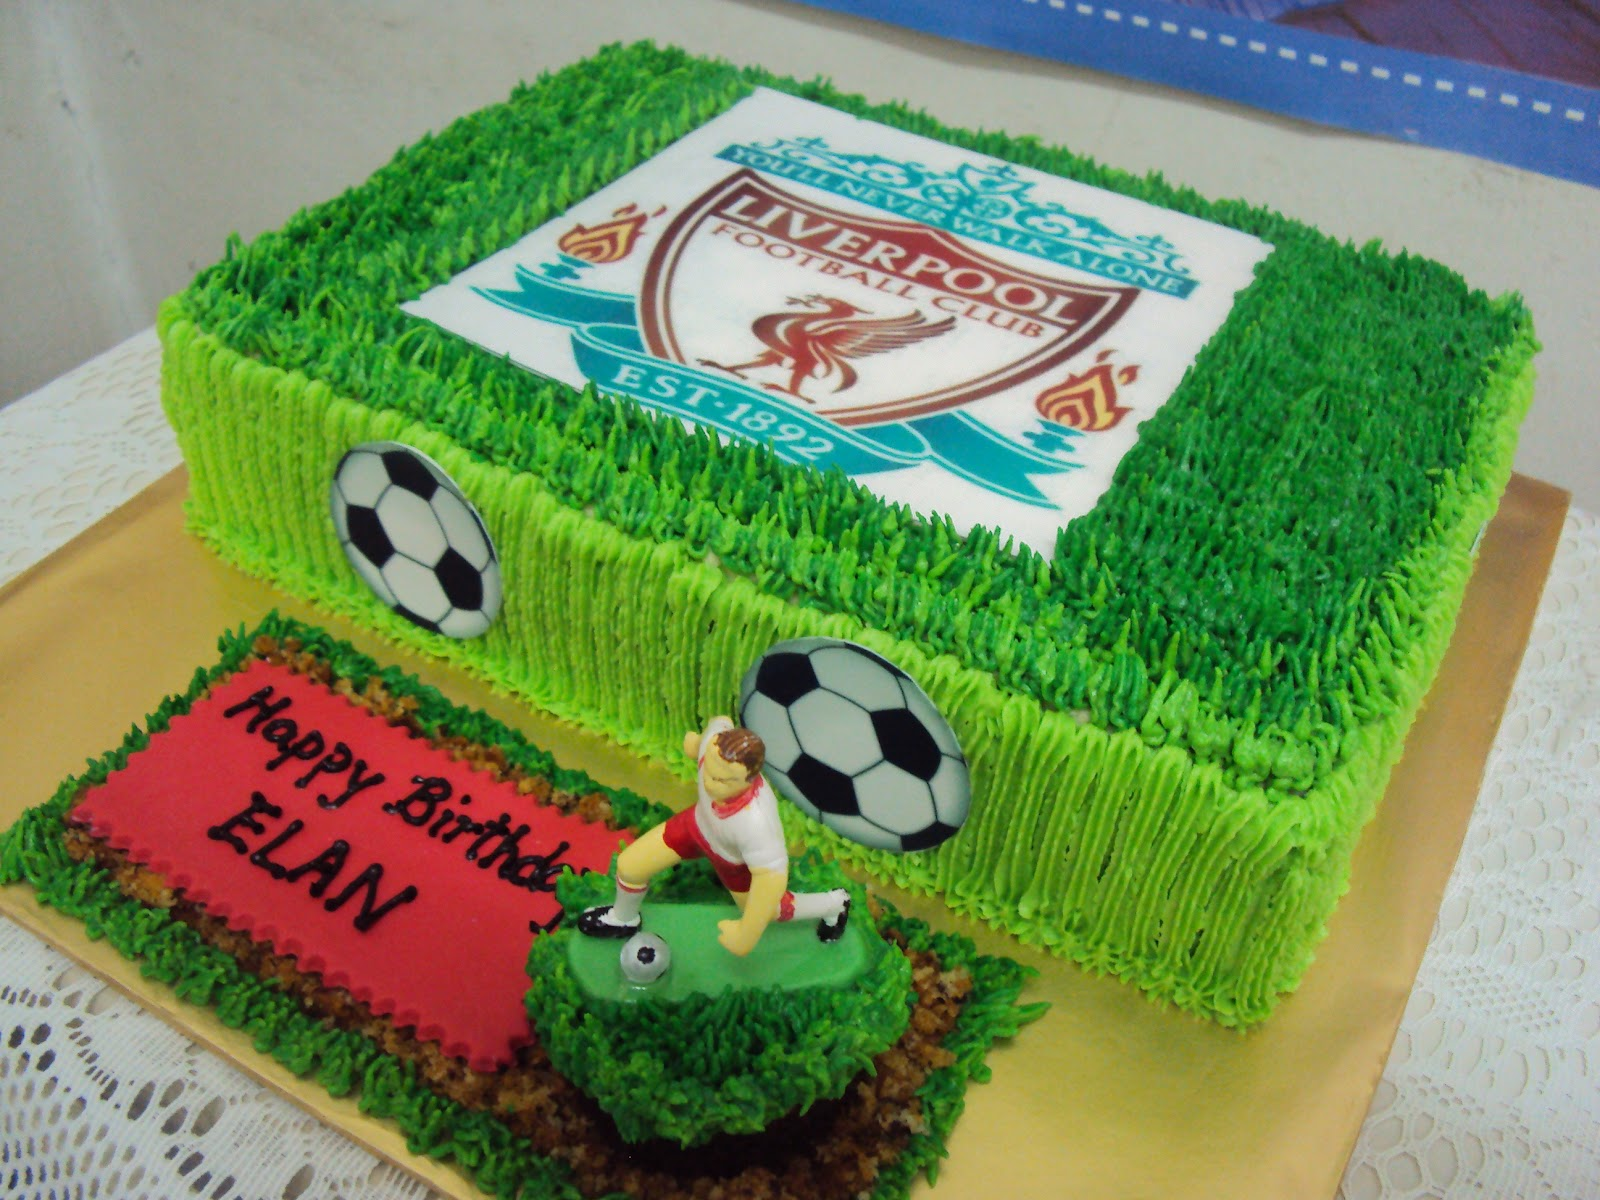 Lmis Cakes Cupcakes Ipoh Contact 012 5991233 Soccer Field Cake